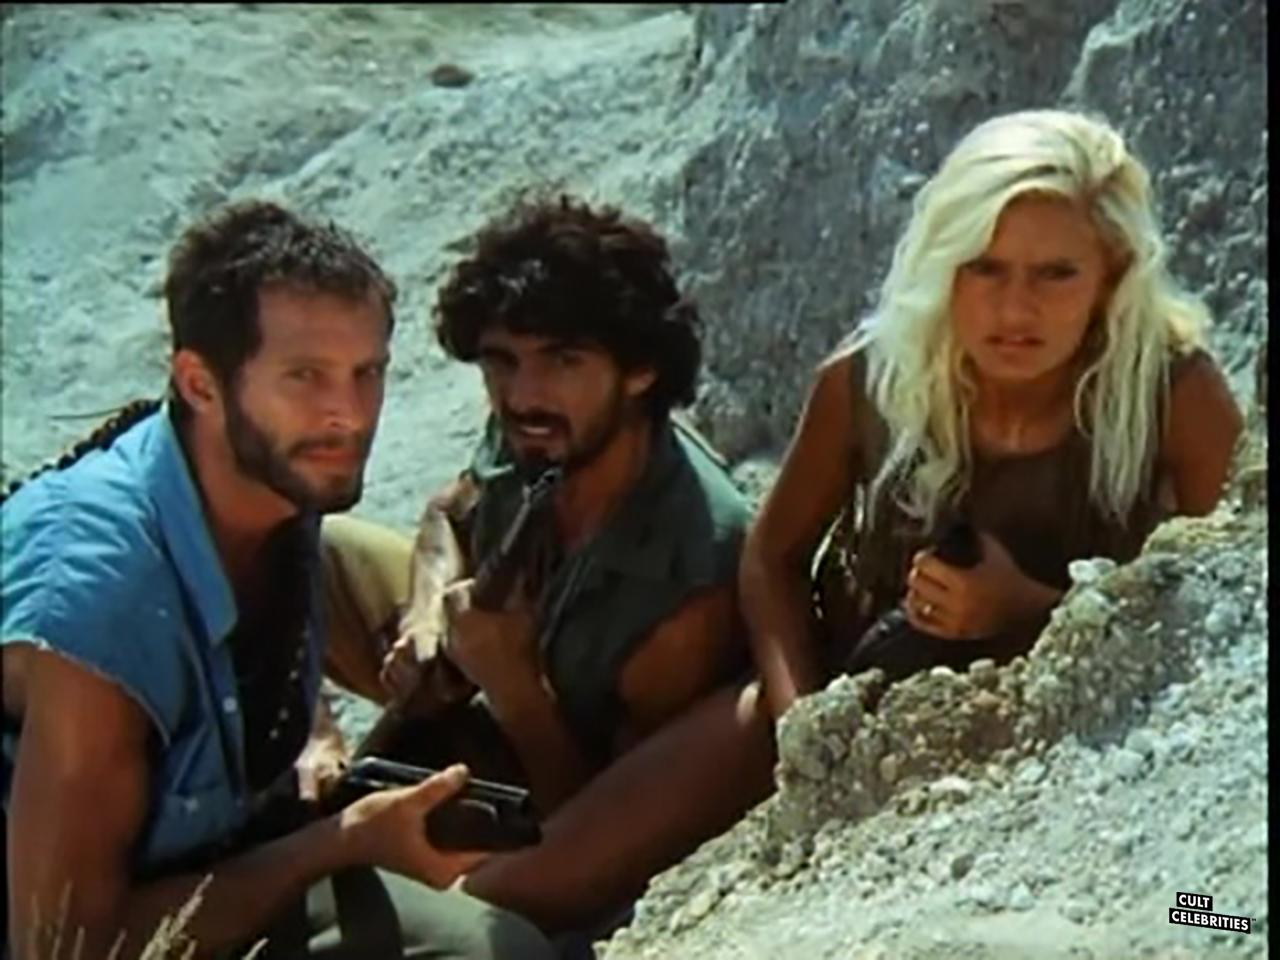 Harrison Muller and Sabrina Siani in 2020 Texas Gladiators (1982)